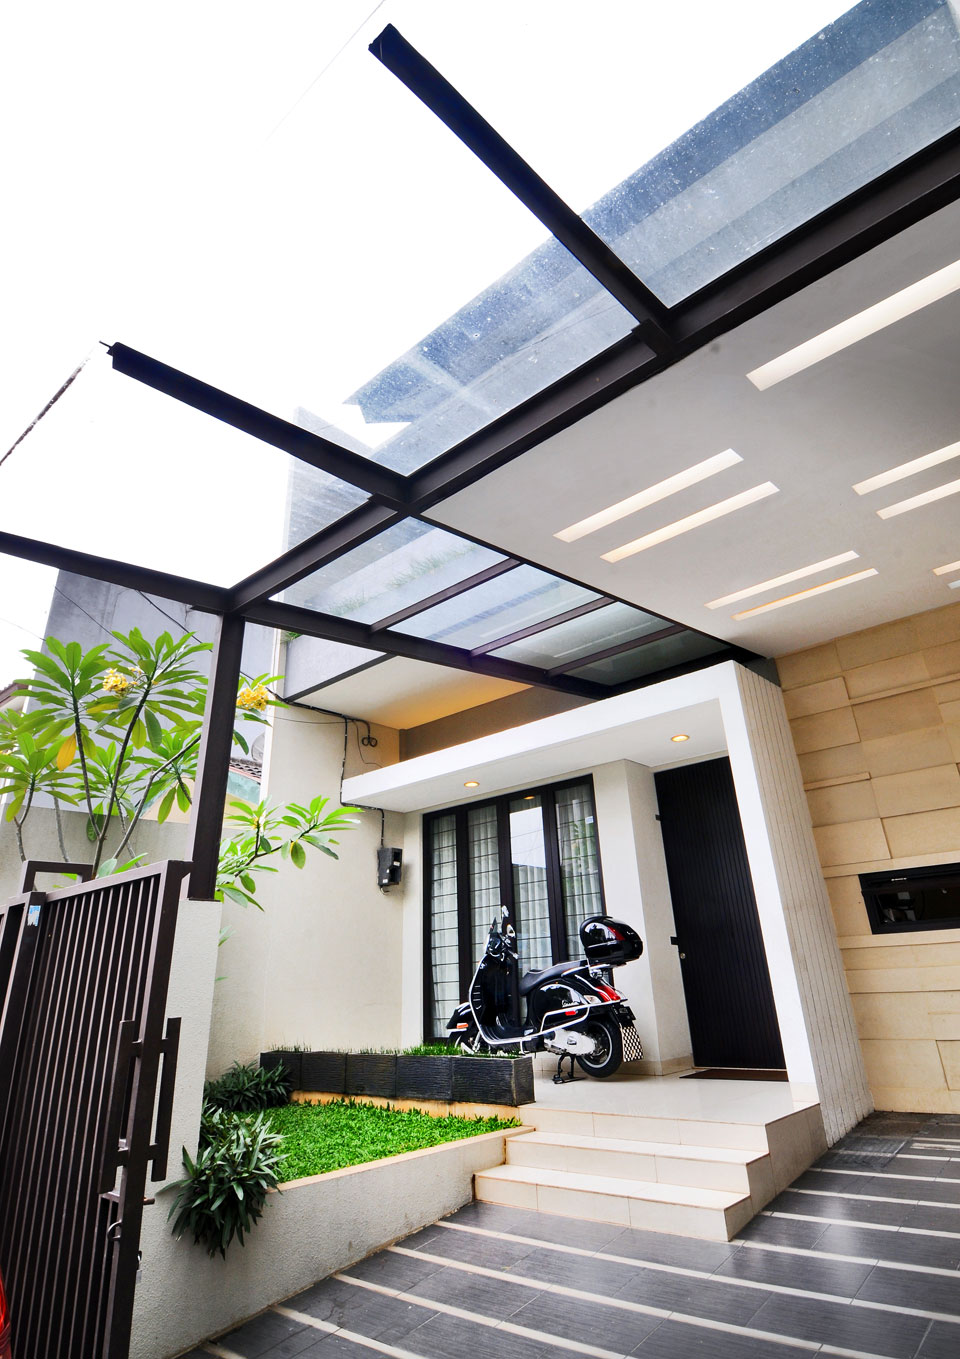 8 carport design for beautify of facade home decors homedecors. Black Bedroom Furniture Sets. Home Design Ideas